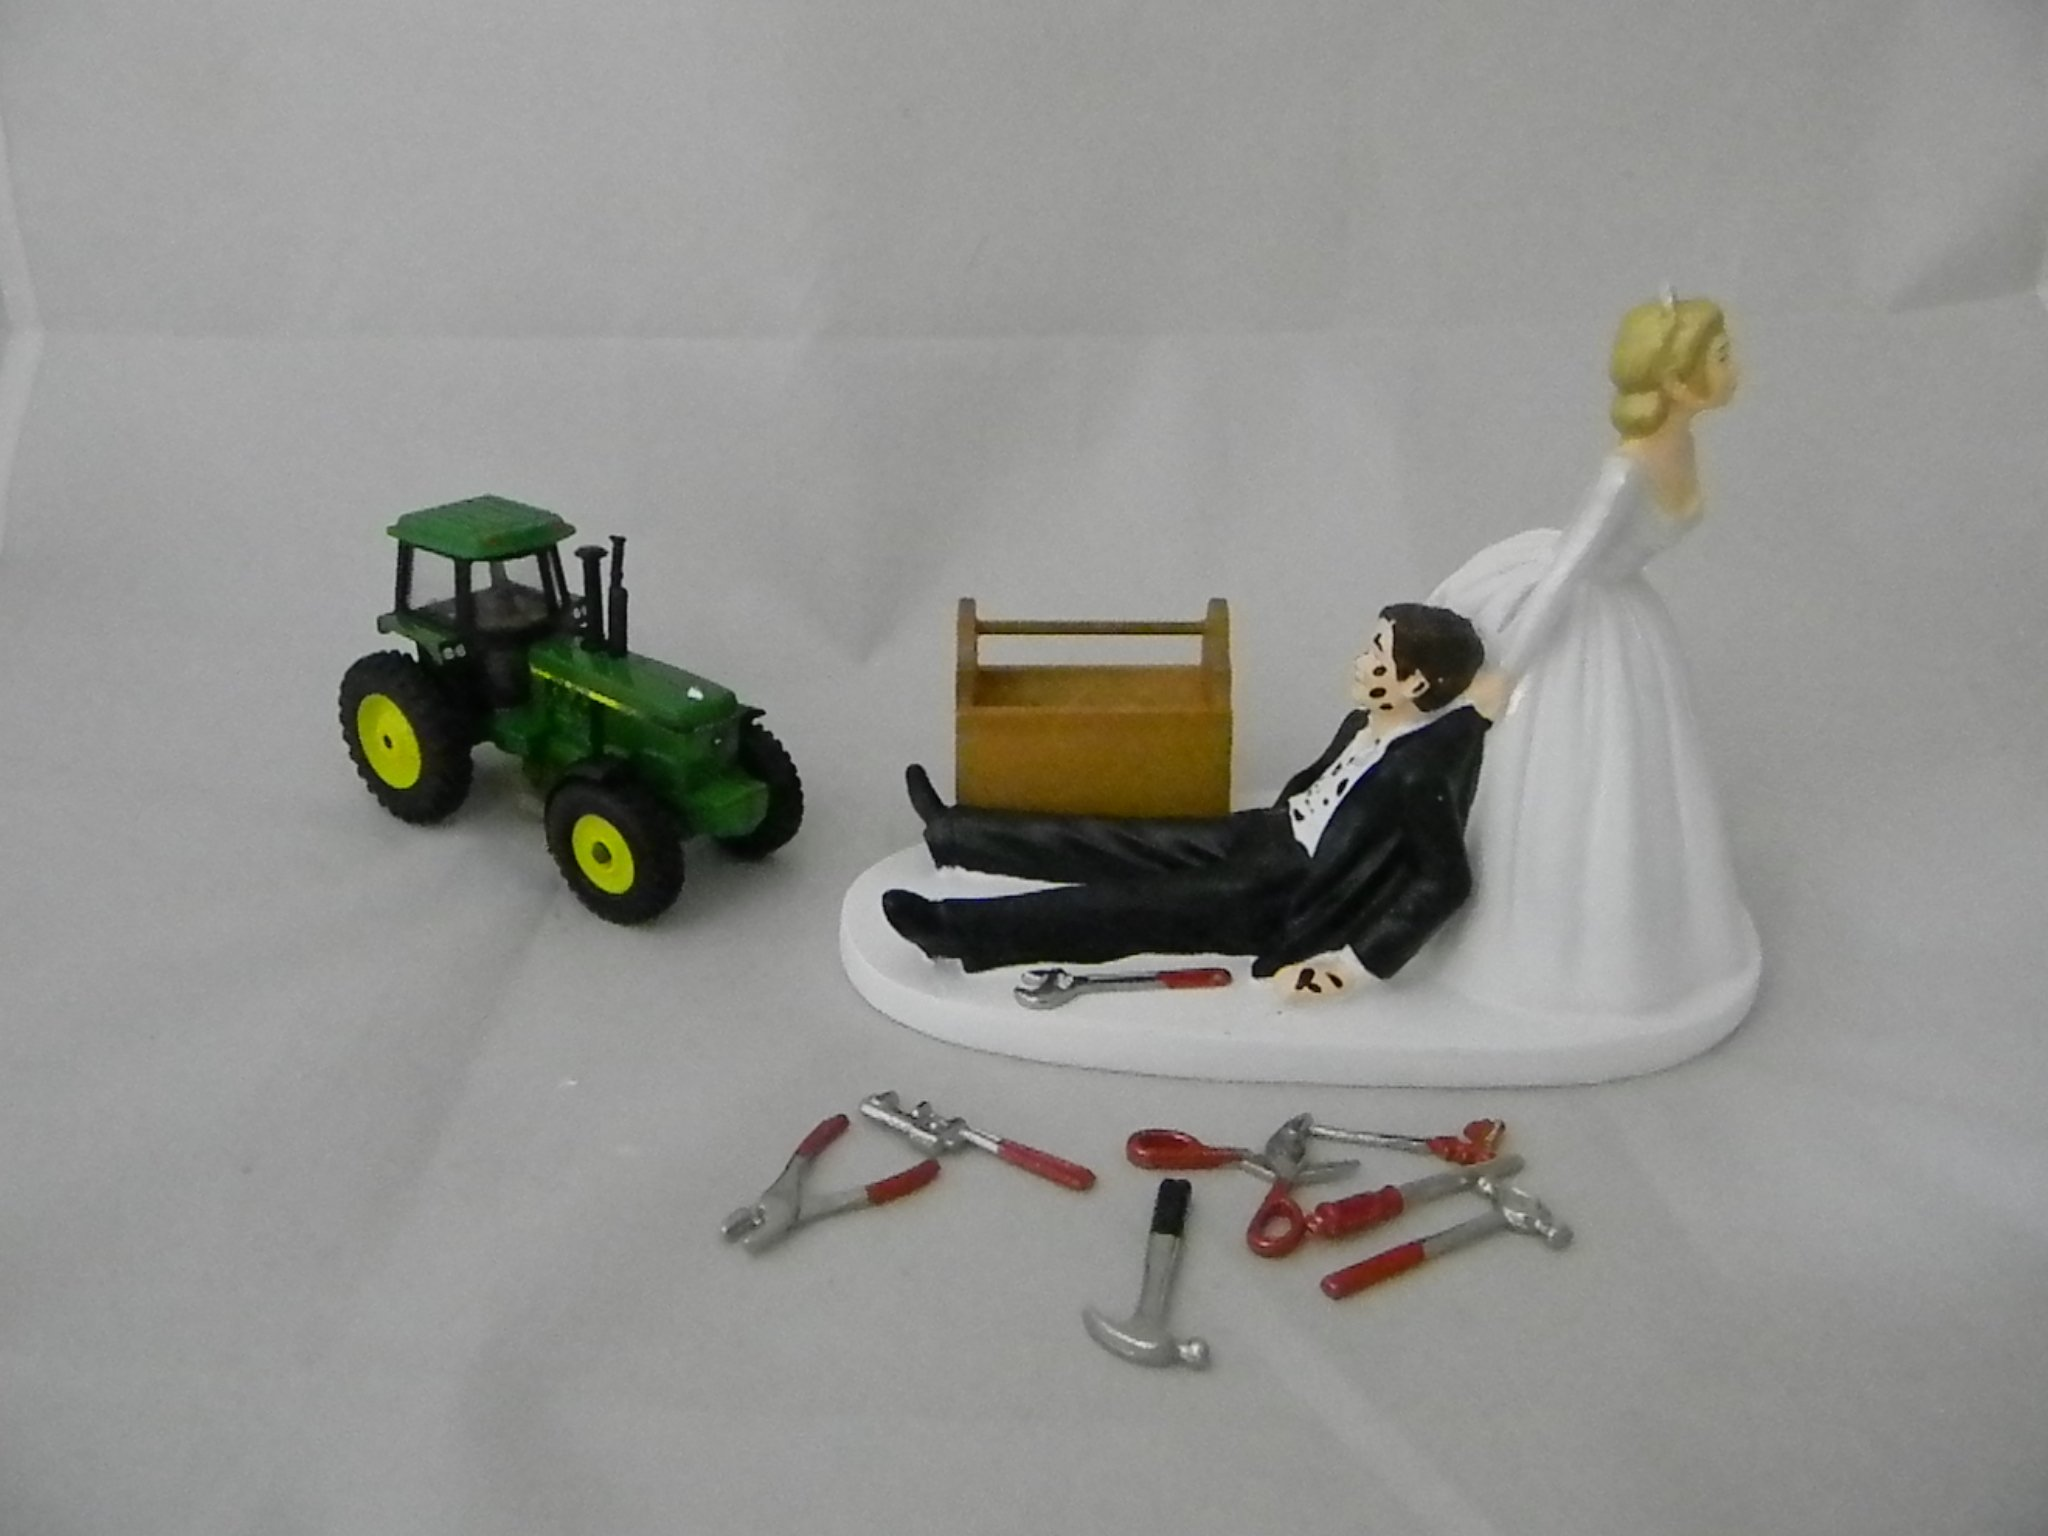 Wedding Green Farm Tractor Shop Garage Mechanic grease Cake Topper by Custom Design Wedding Supplies by Suzanne